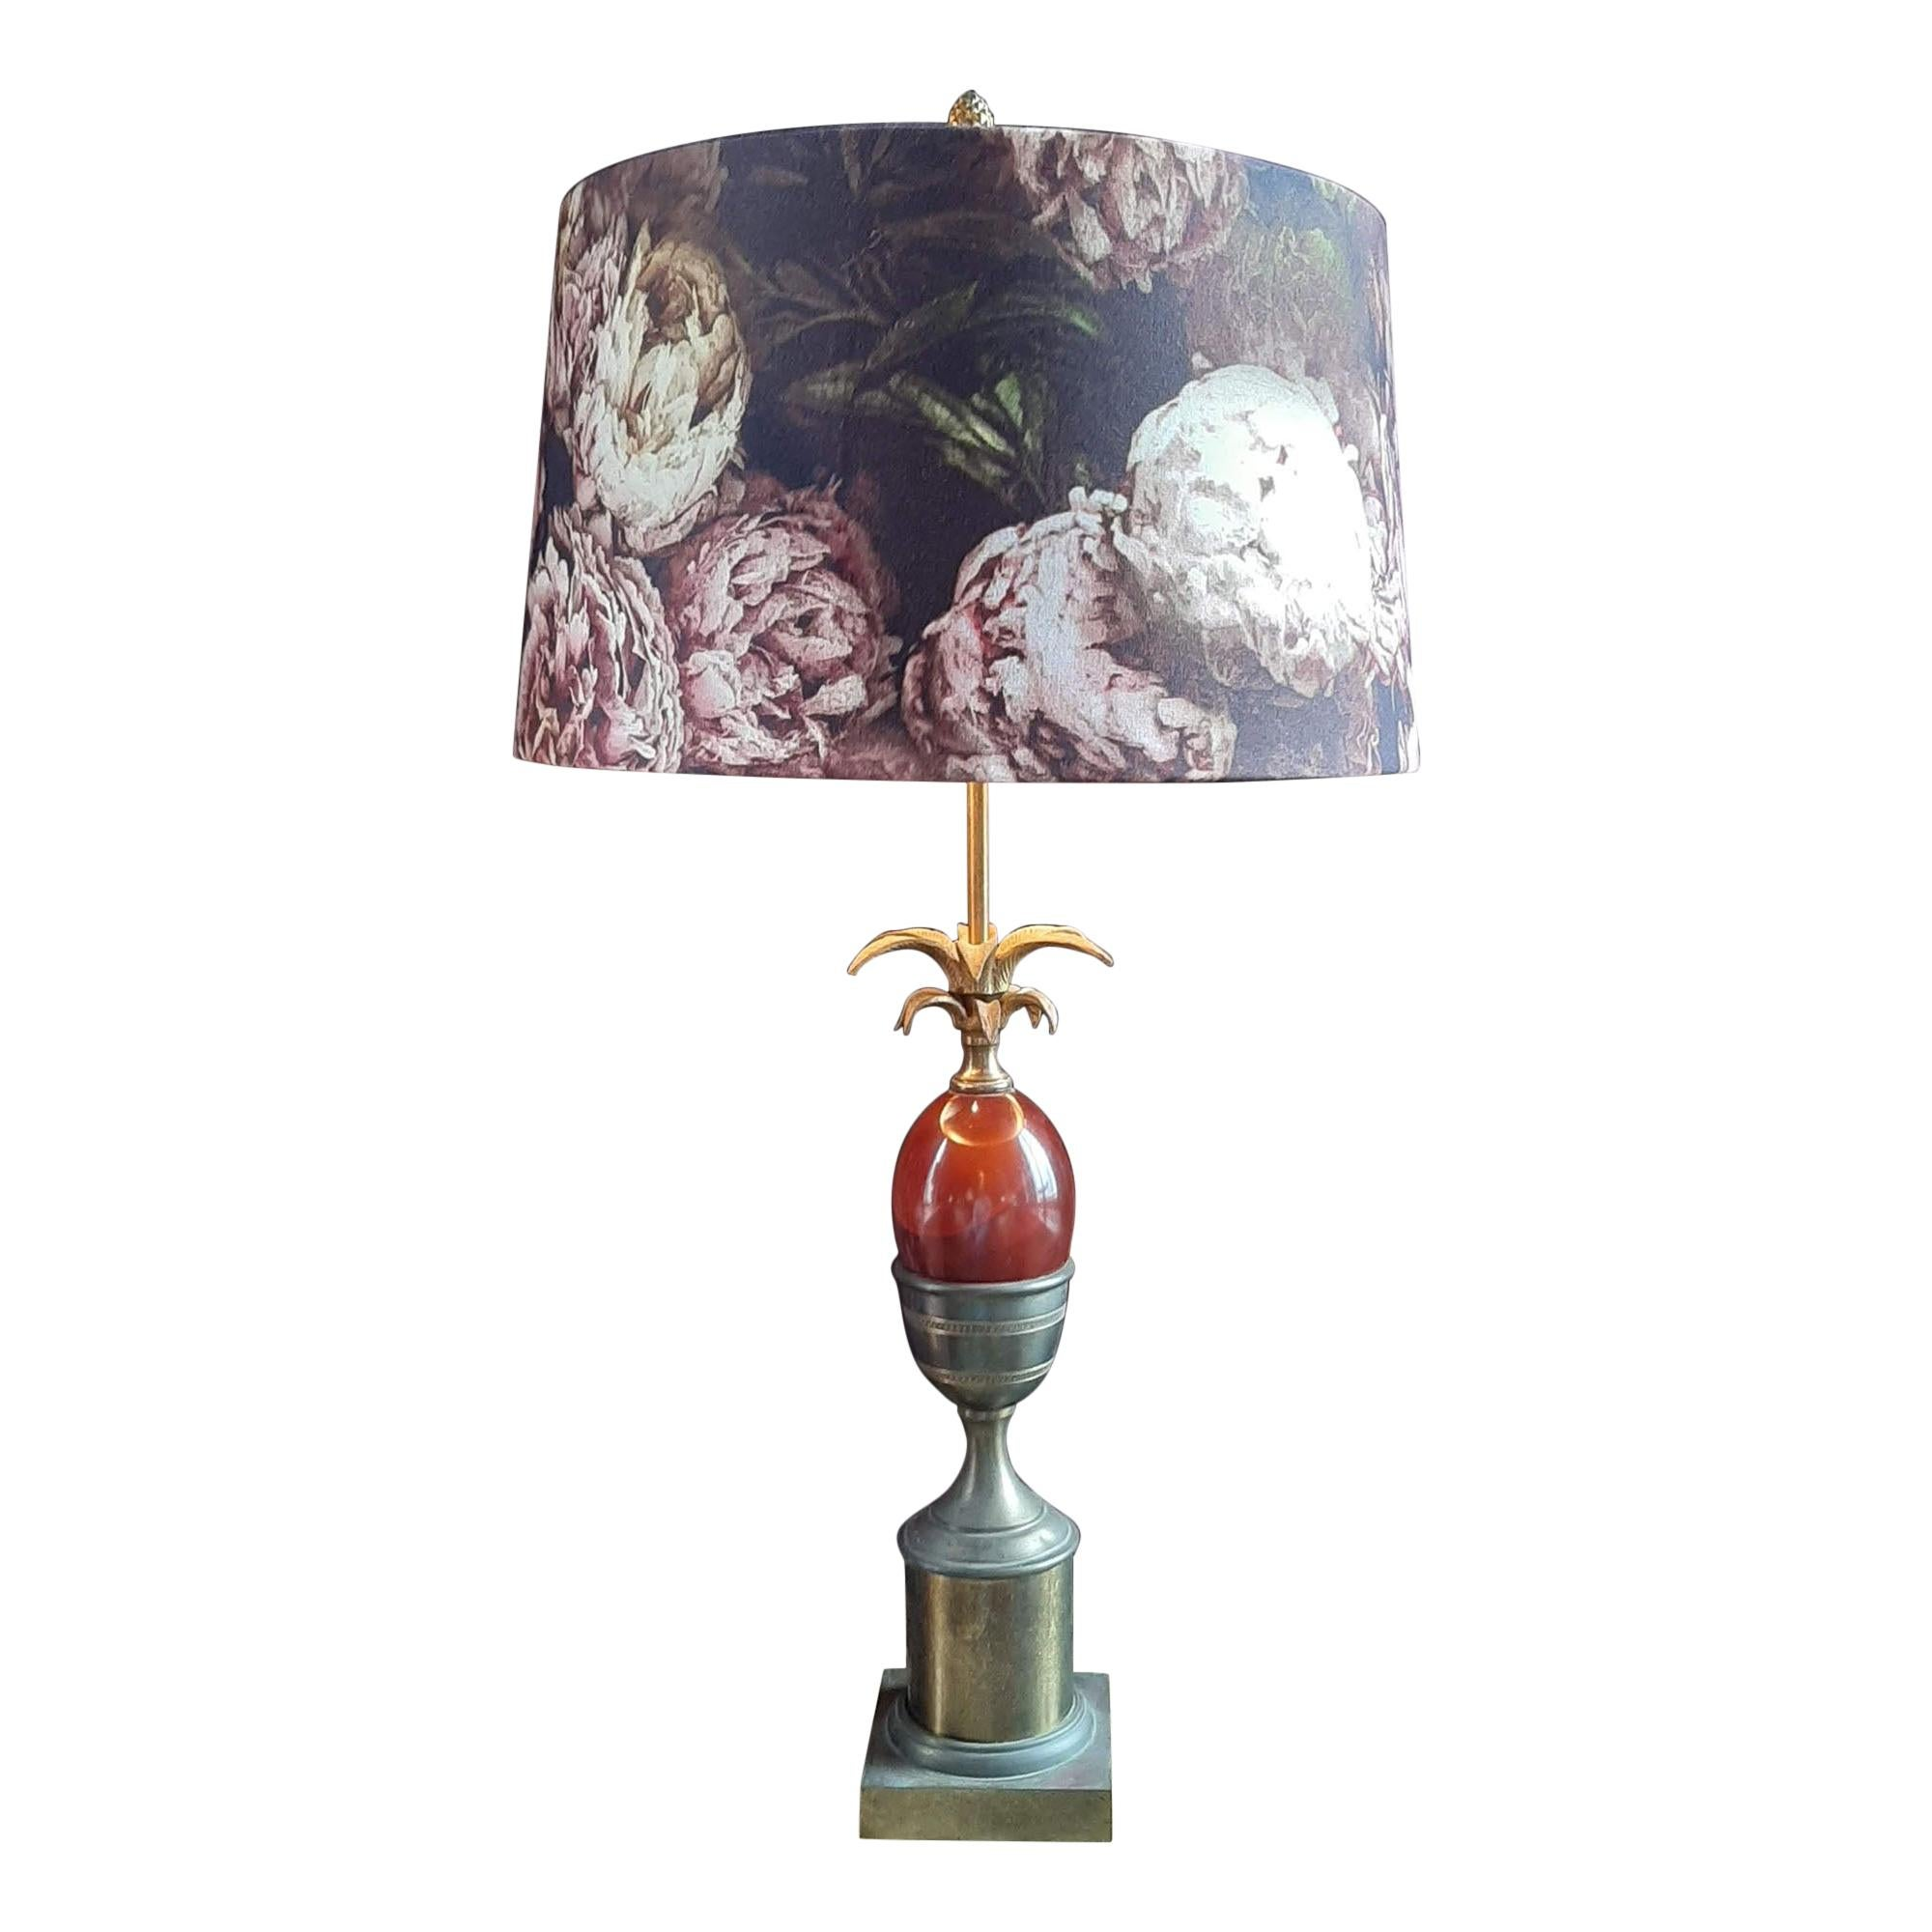 Maison Charles Palm or Pineapple Table Lamp in Copper and Colored Glass, 1960s